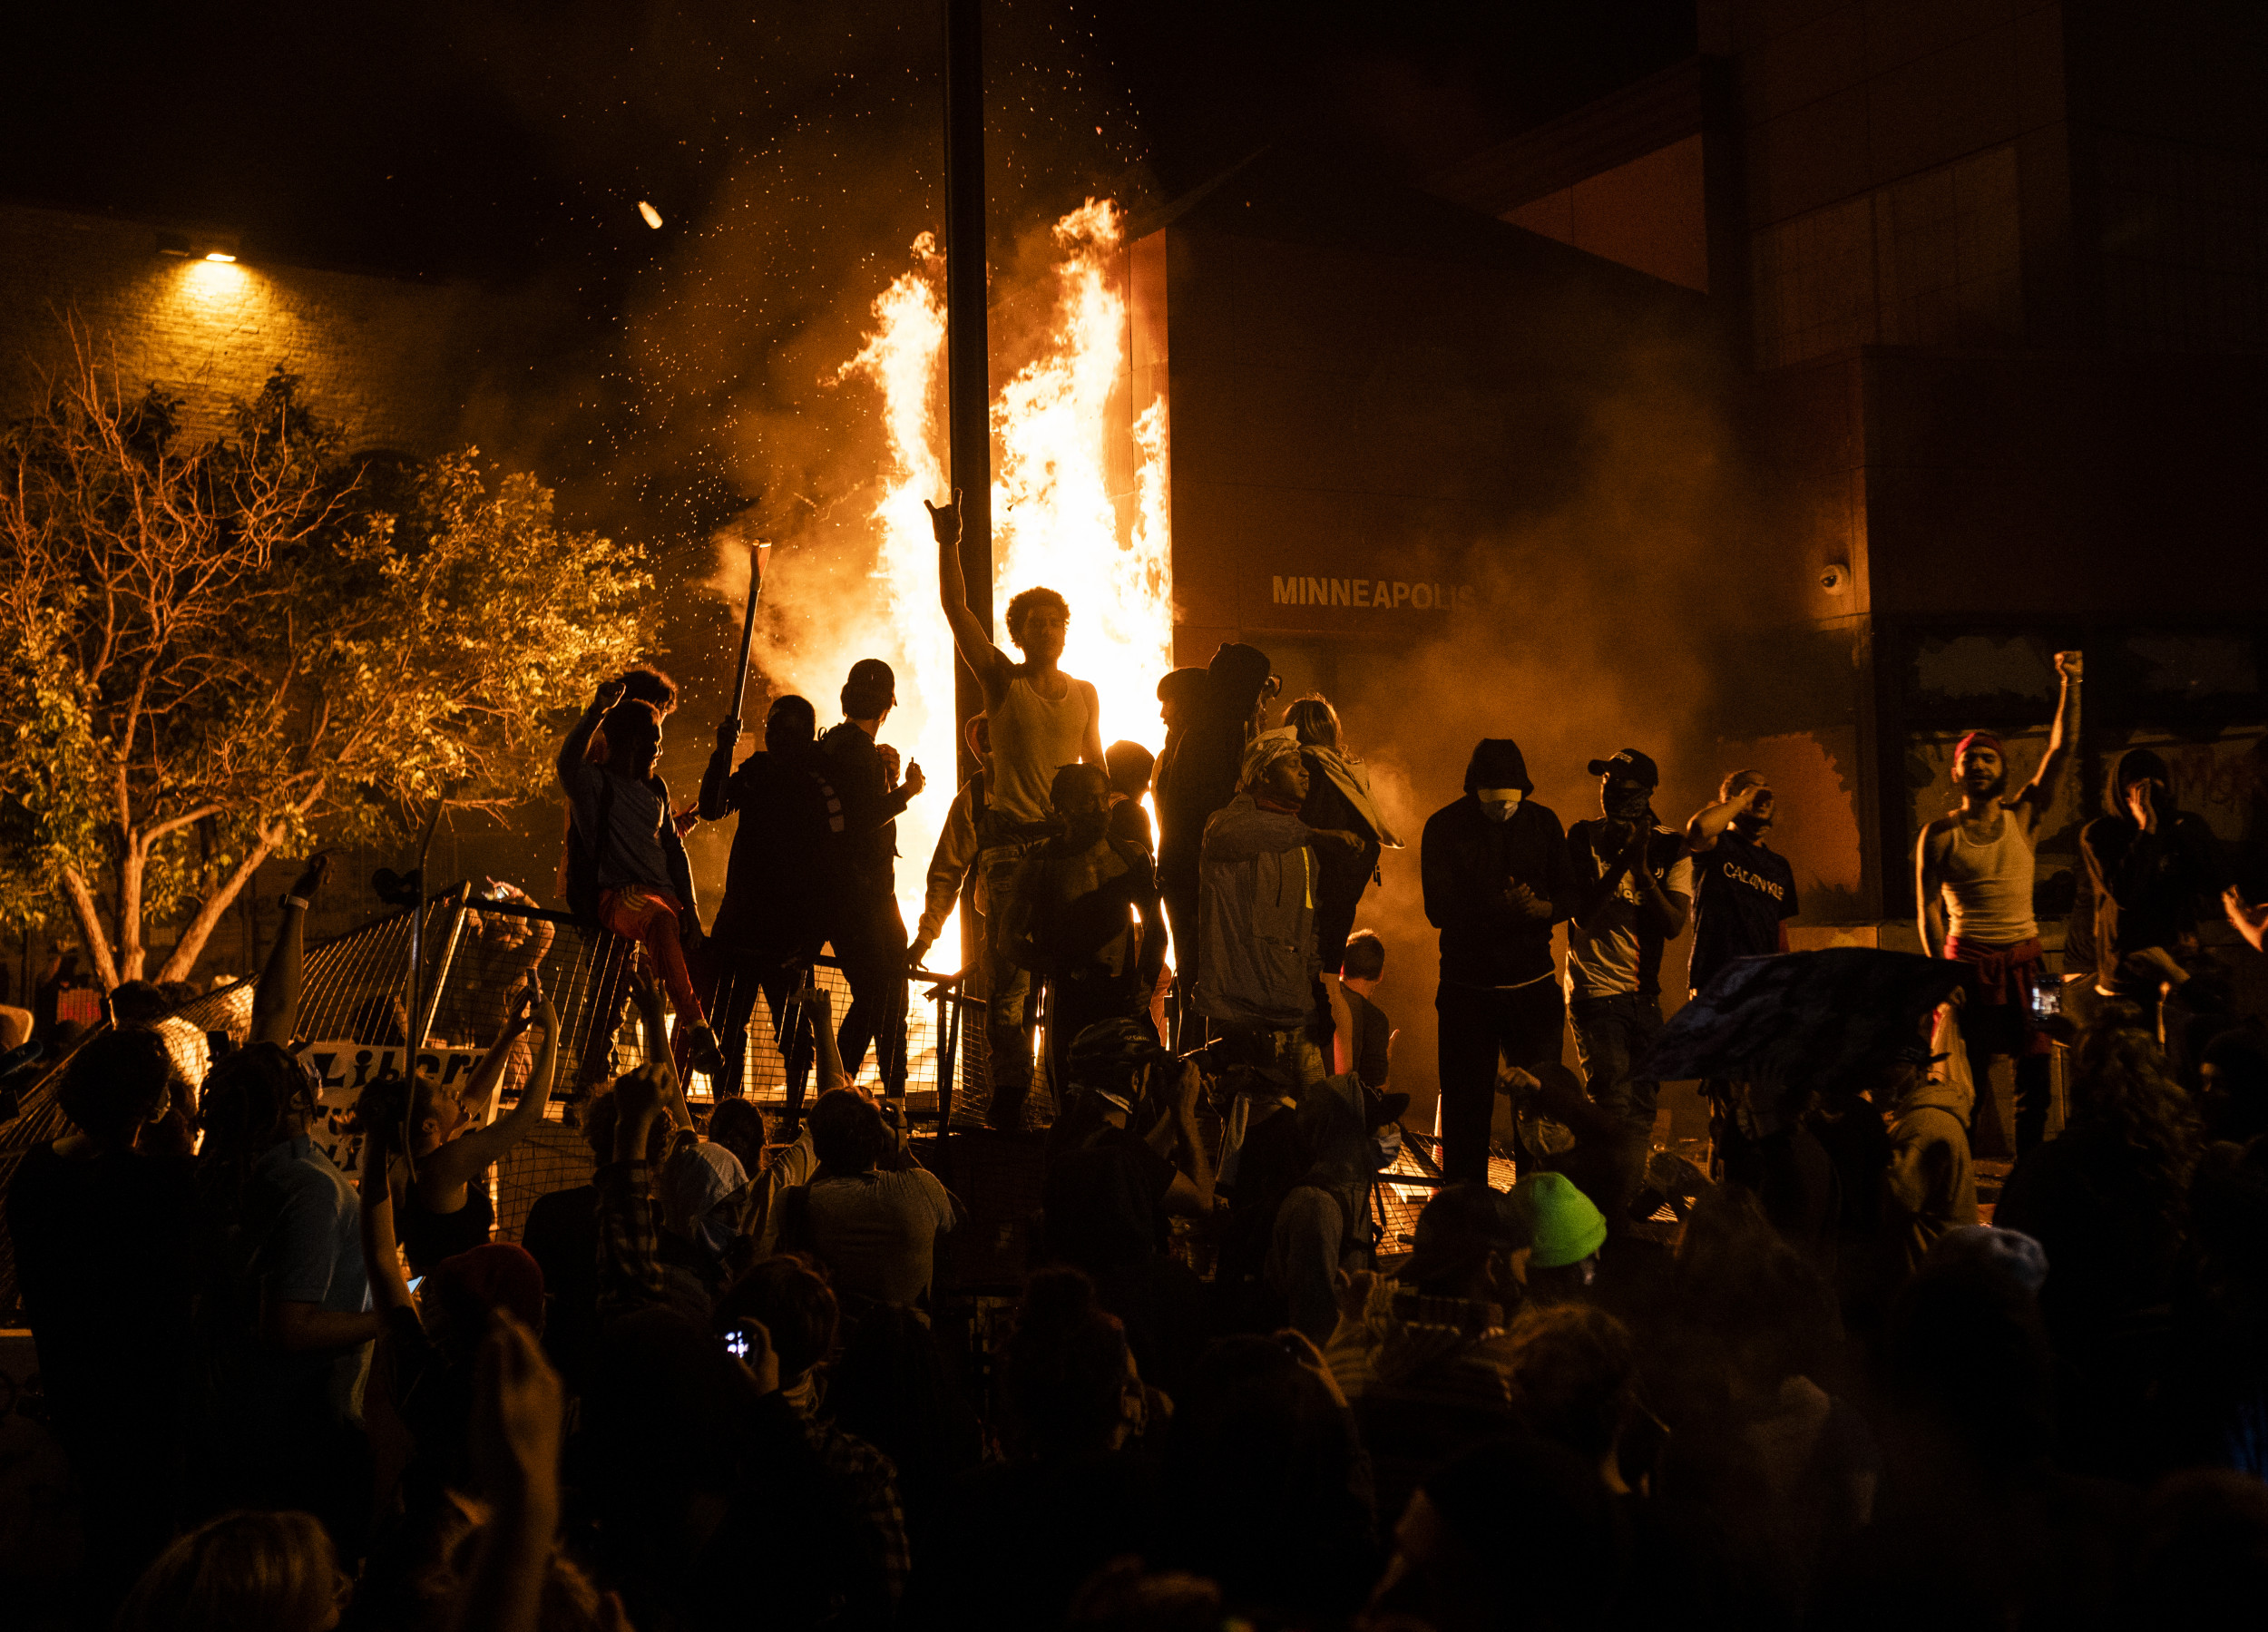 Photos Show Floyd Protests Escalate to Violence, Flames...